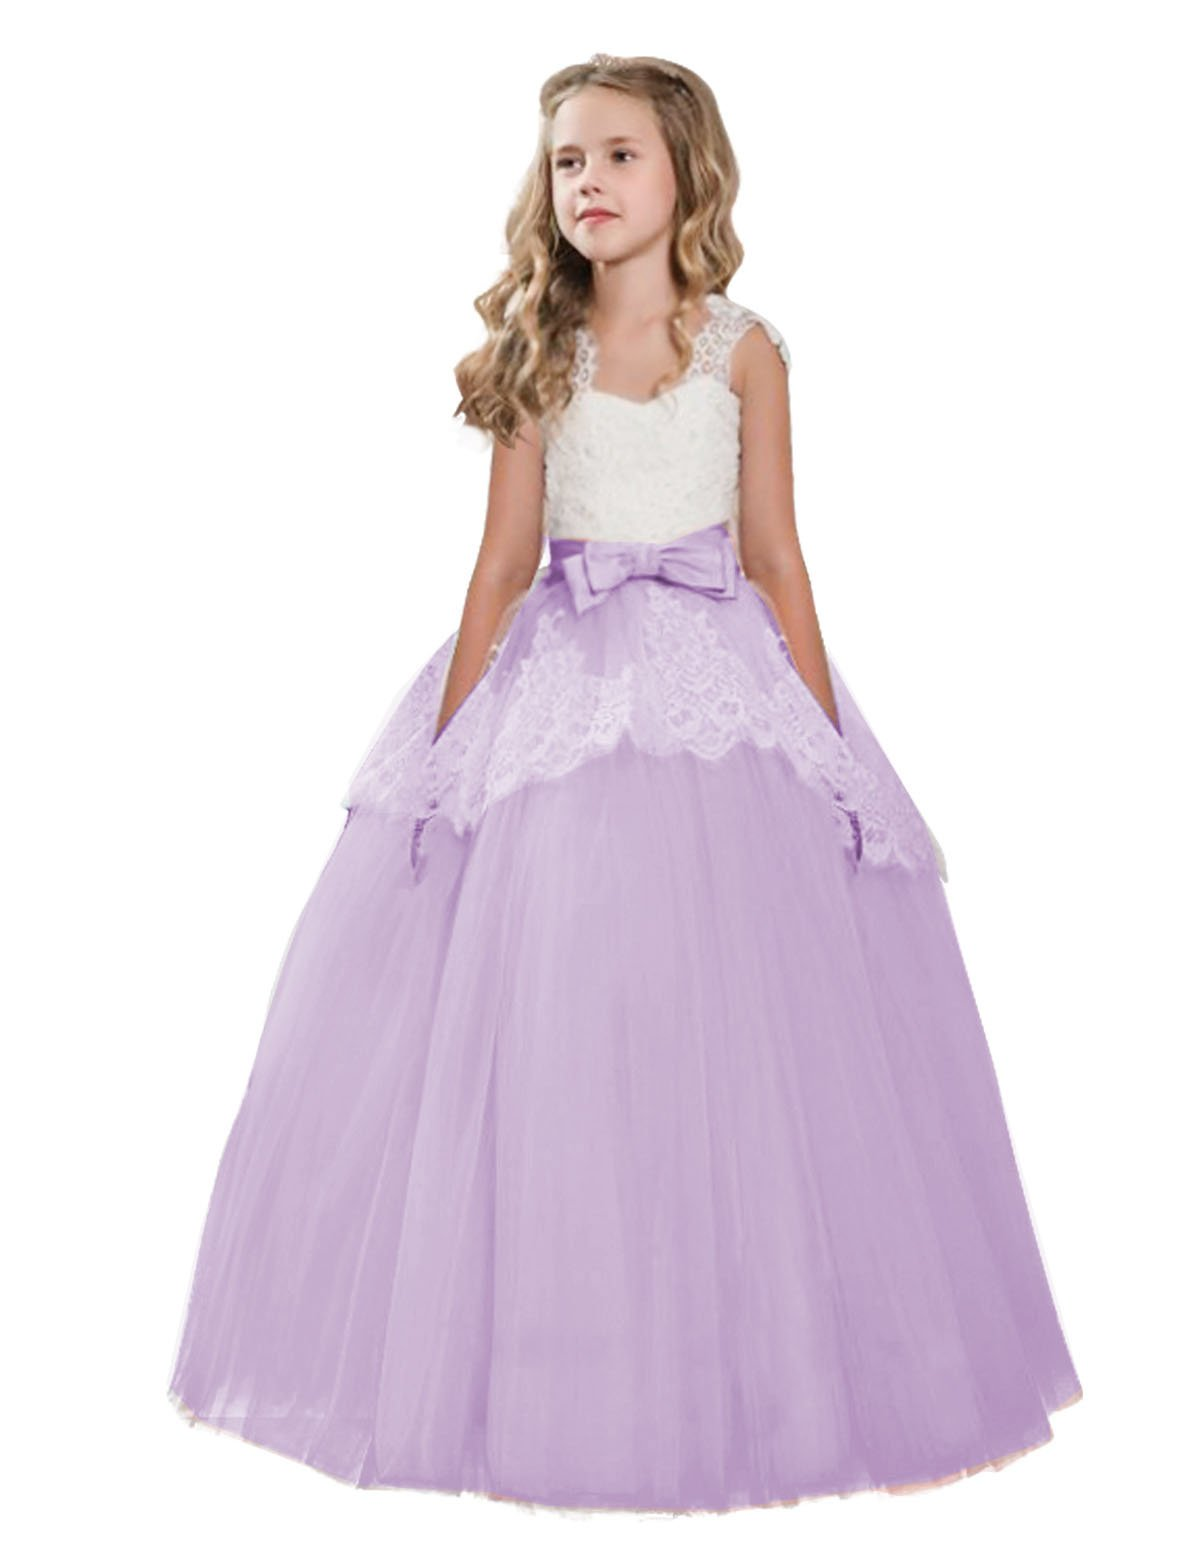 NNJXD Summer Lace Tulle Flower Girl Wedding Birthday Party Princess Long Dresses Ball Gown Size (170) 13-14 Years Purple